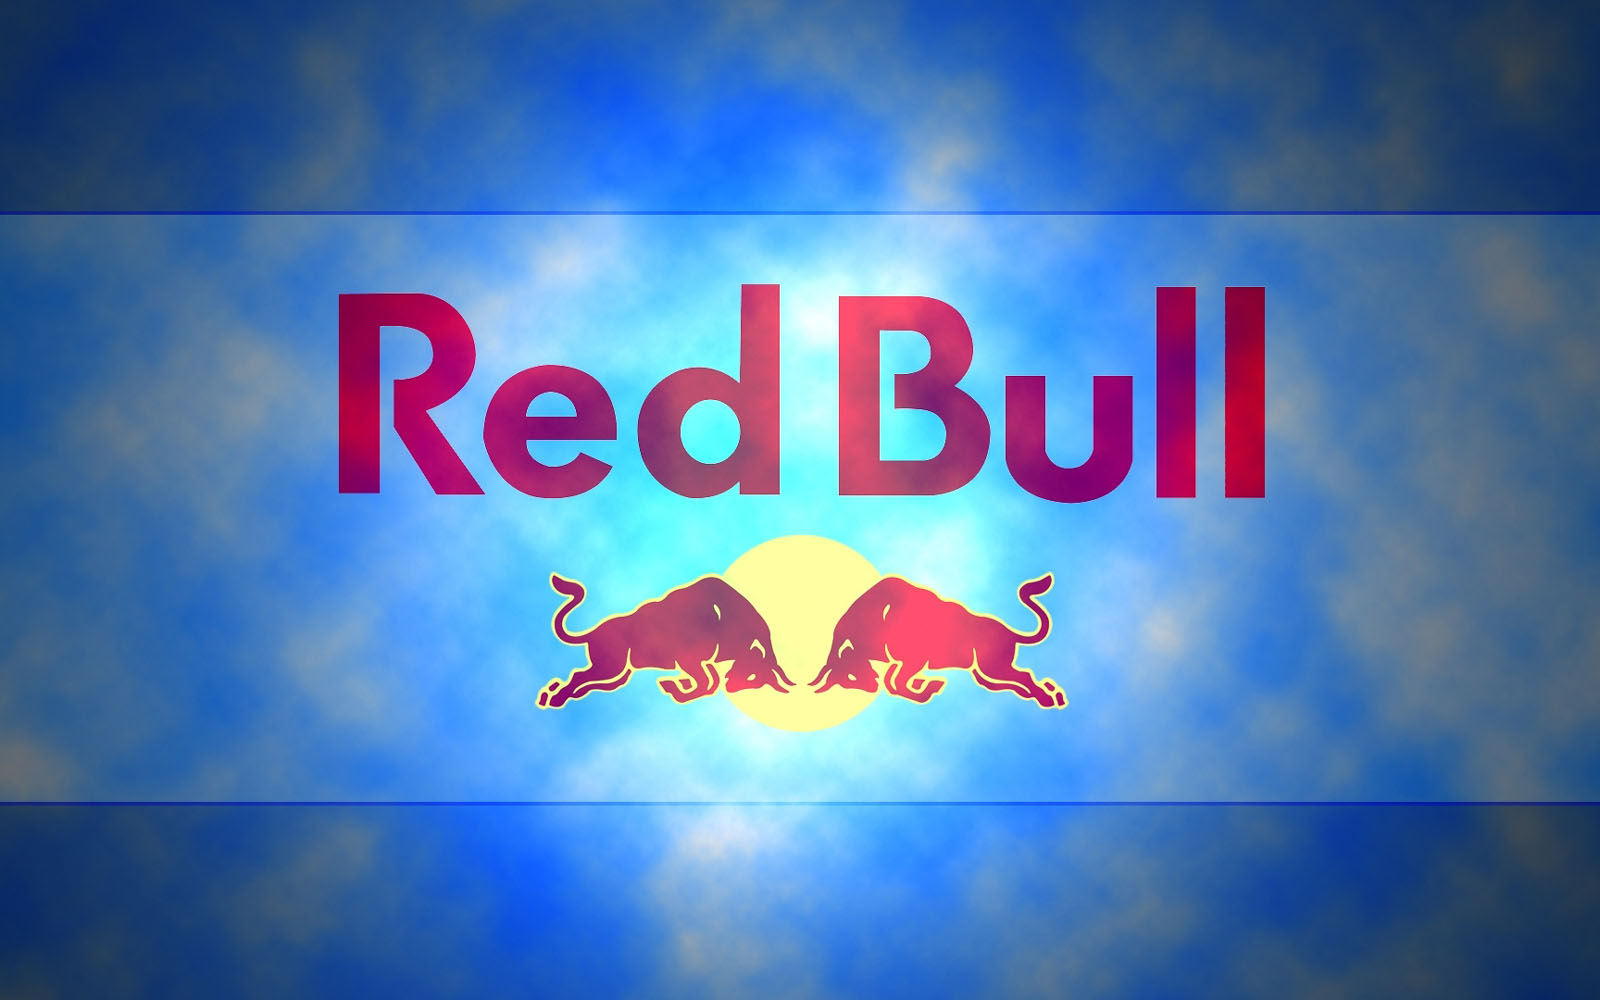 red bull 2 essay Read this essay on market research red bull come browse our large digital warehouse of free sample essays get the knowledge you need in order to pass your classes.